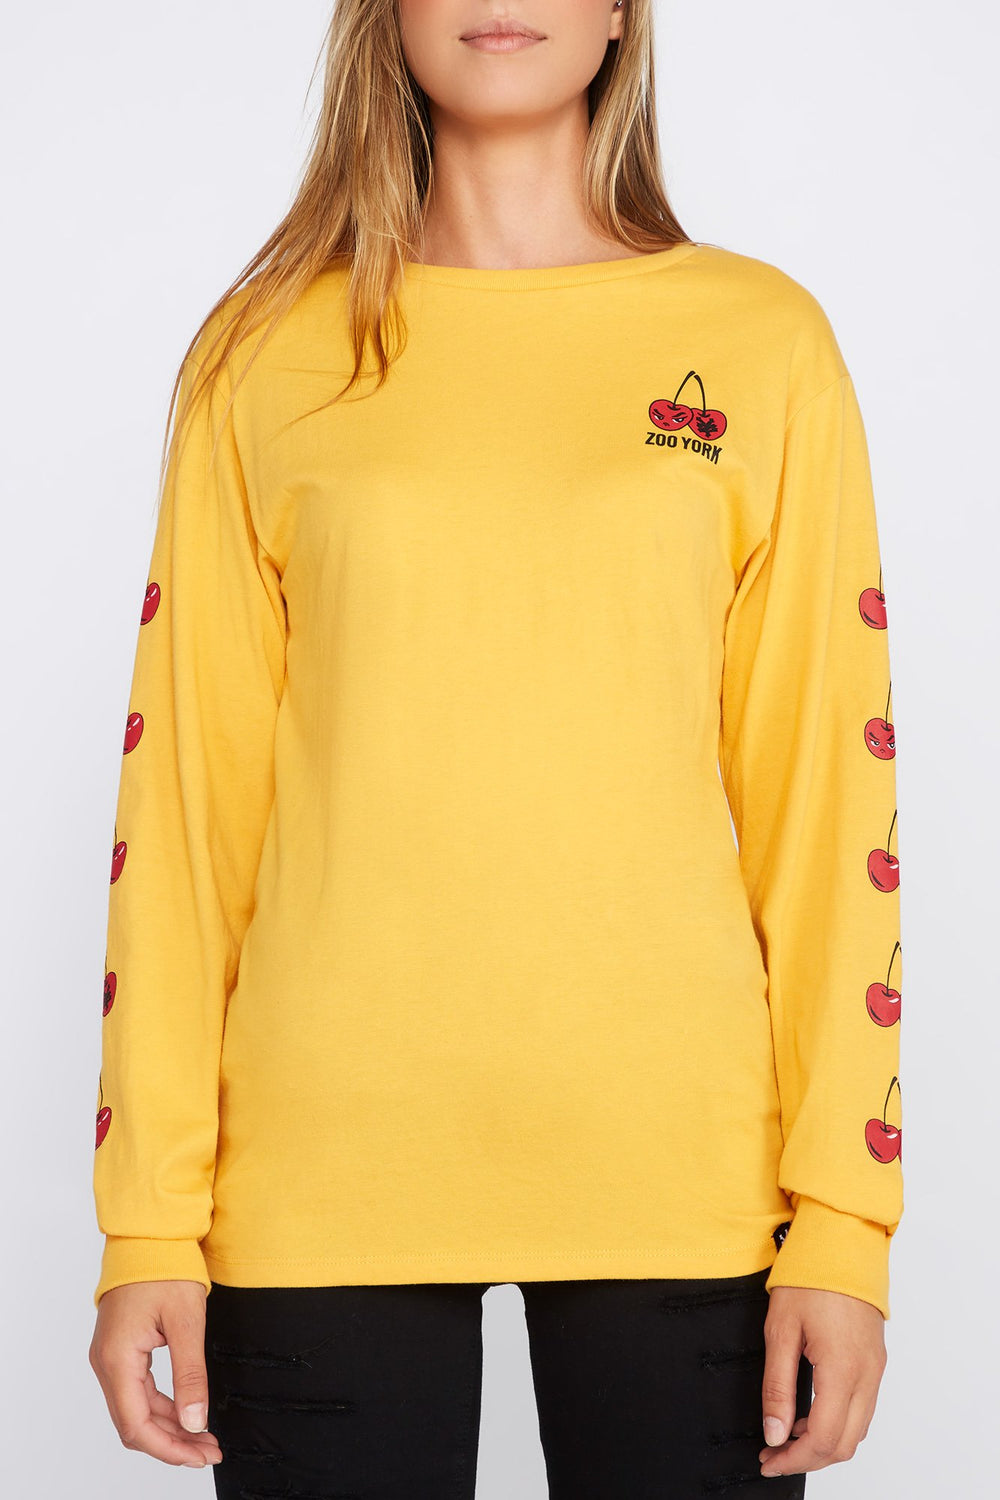 Zoo York Womens Cherry Logo Long Sleeve Shirt Yellow